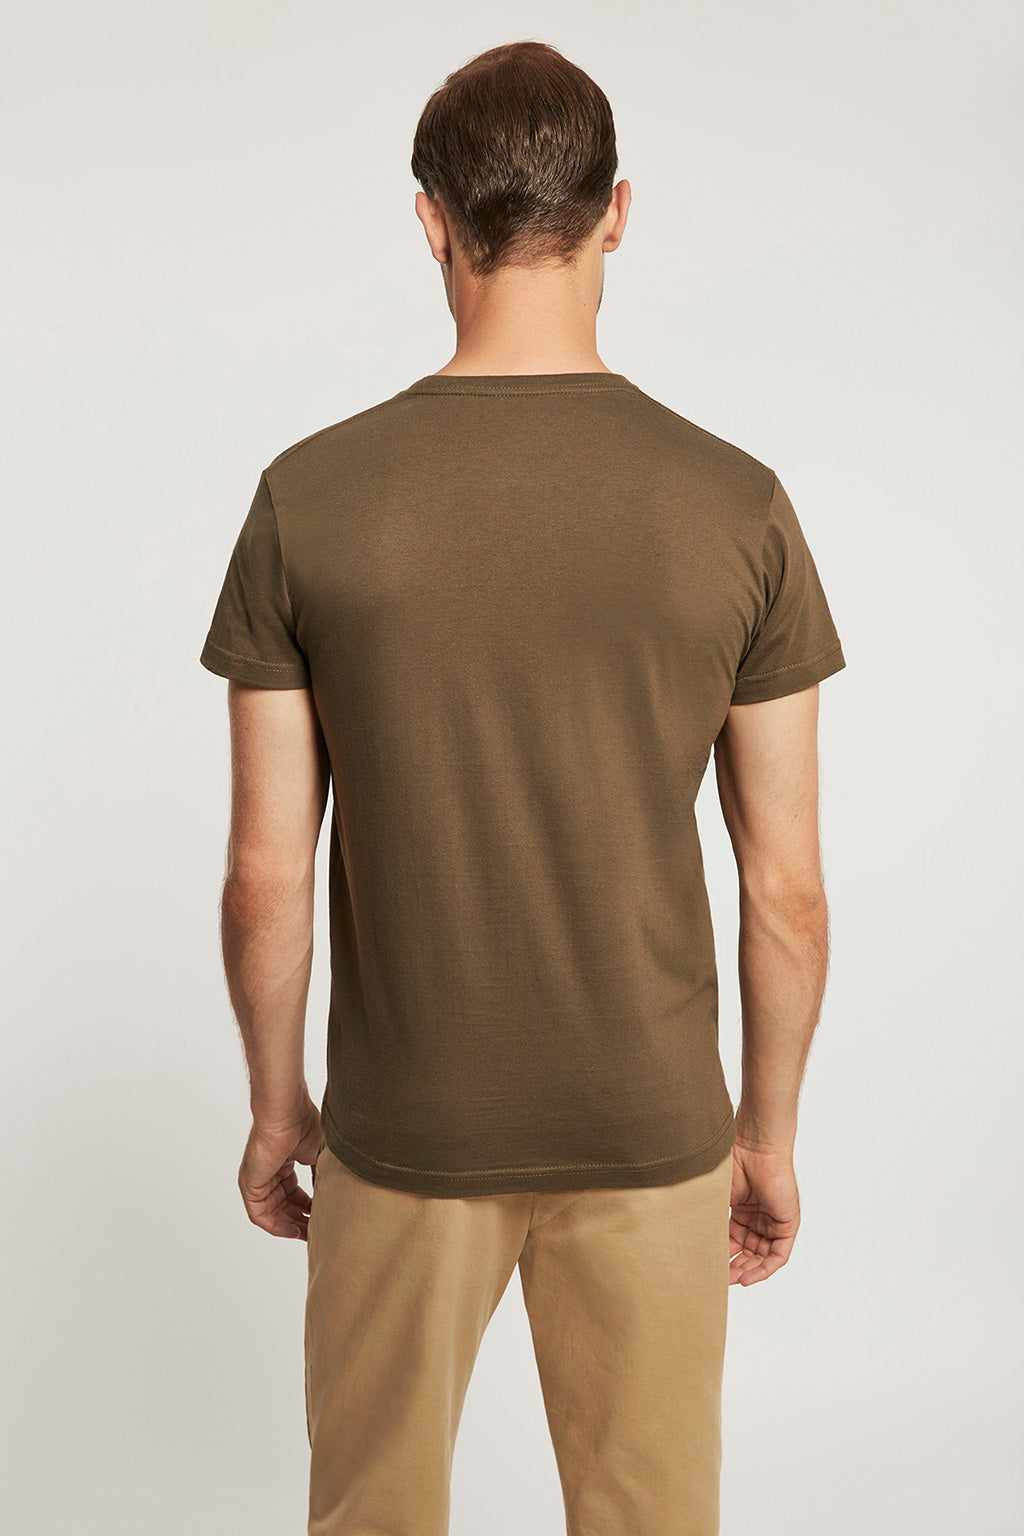 Khaki T-shirt with bi-coloured print